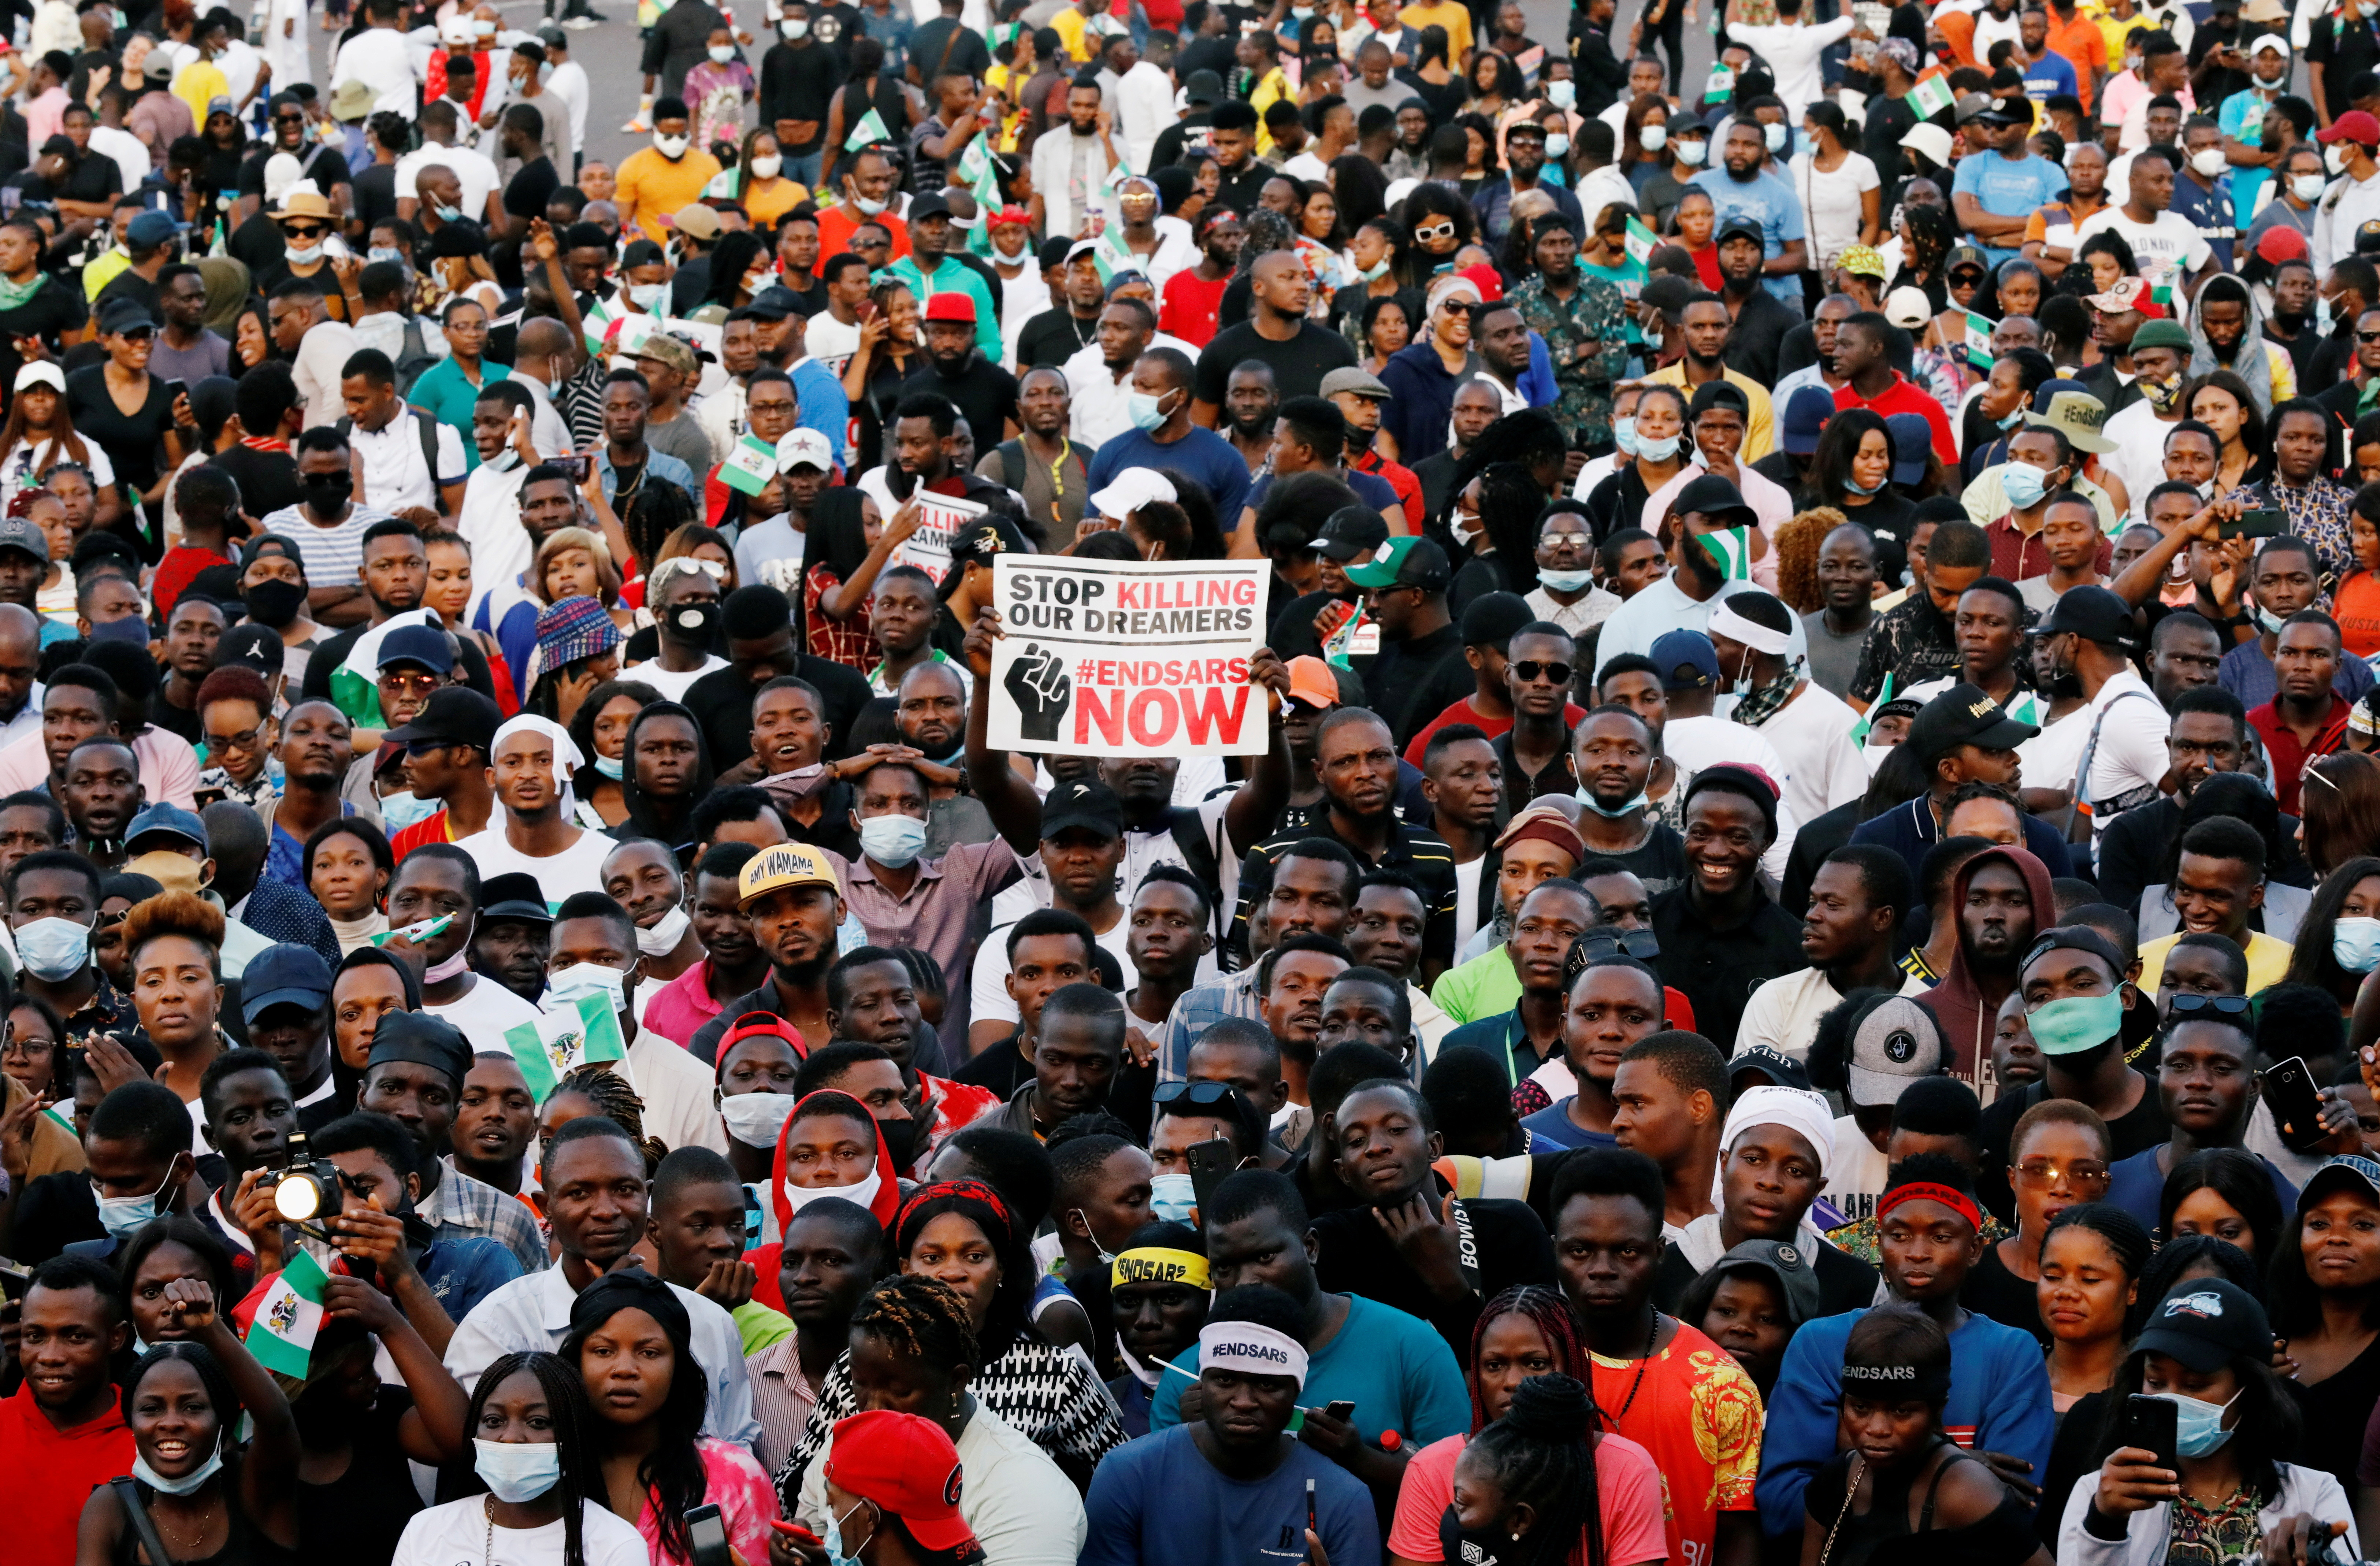 Demonstrators gather during a protest over alleged police brutality in Lagos, Nigeria October 17, 2020.